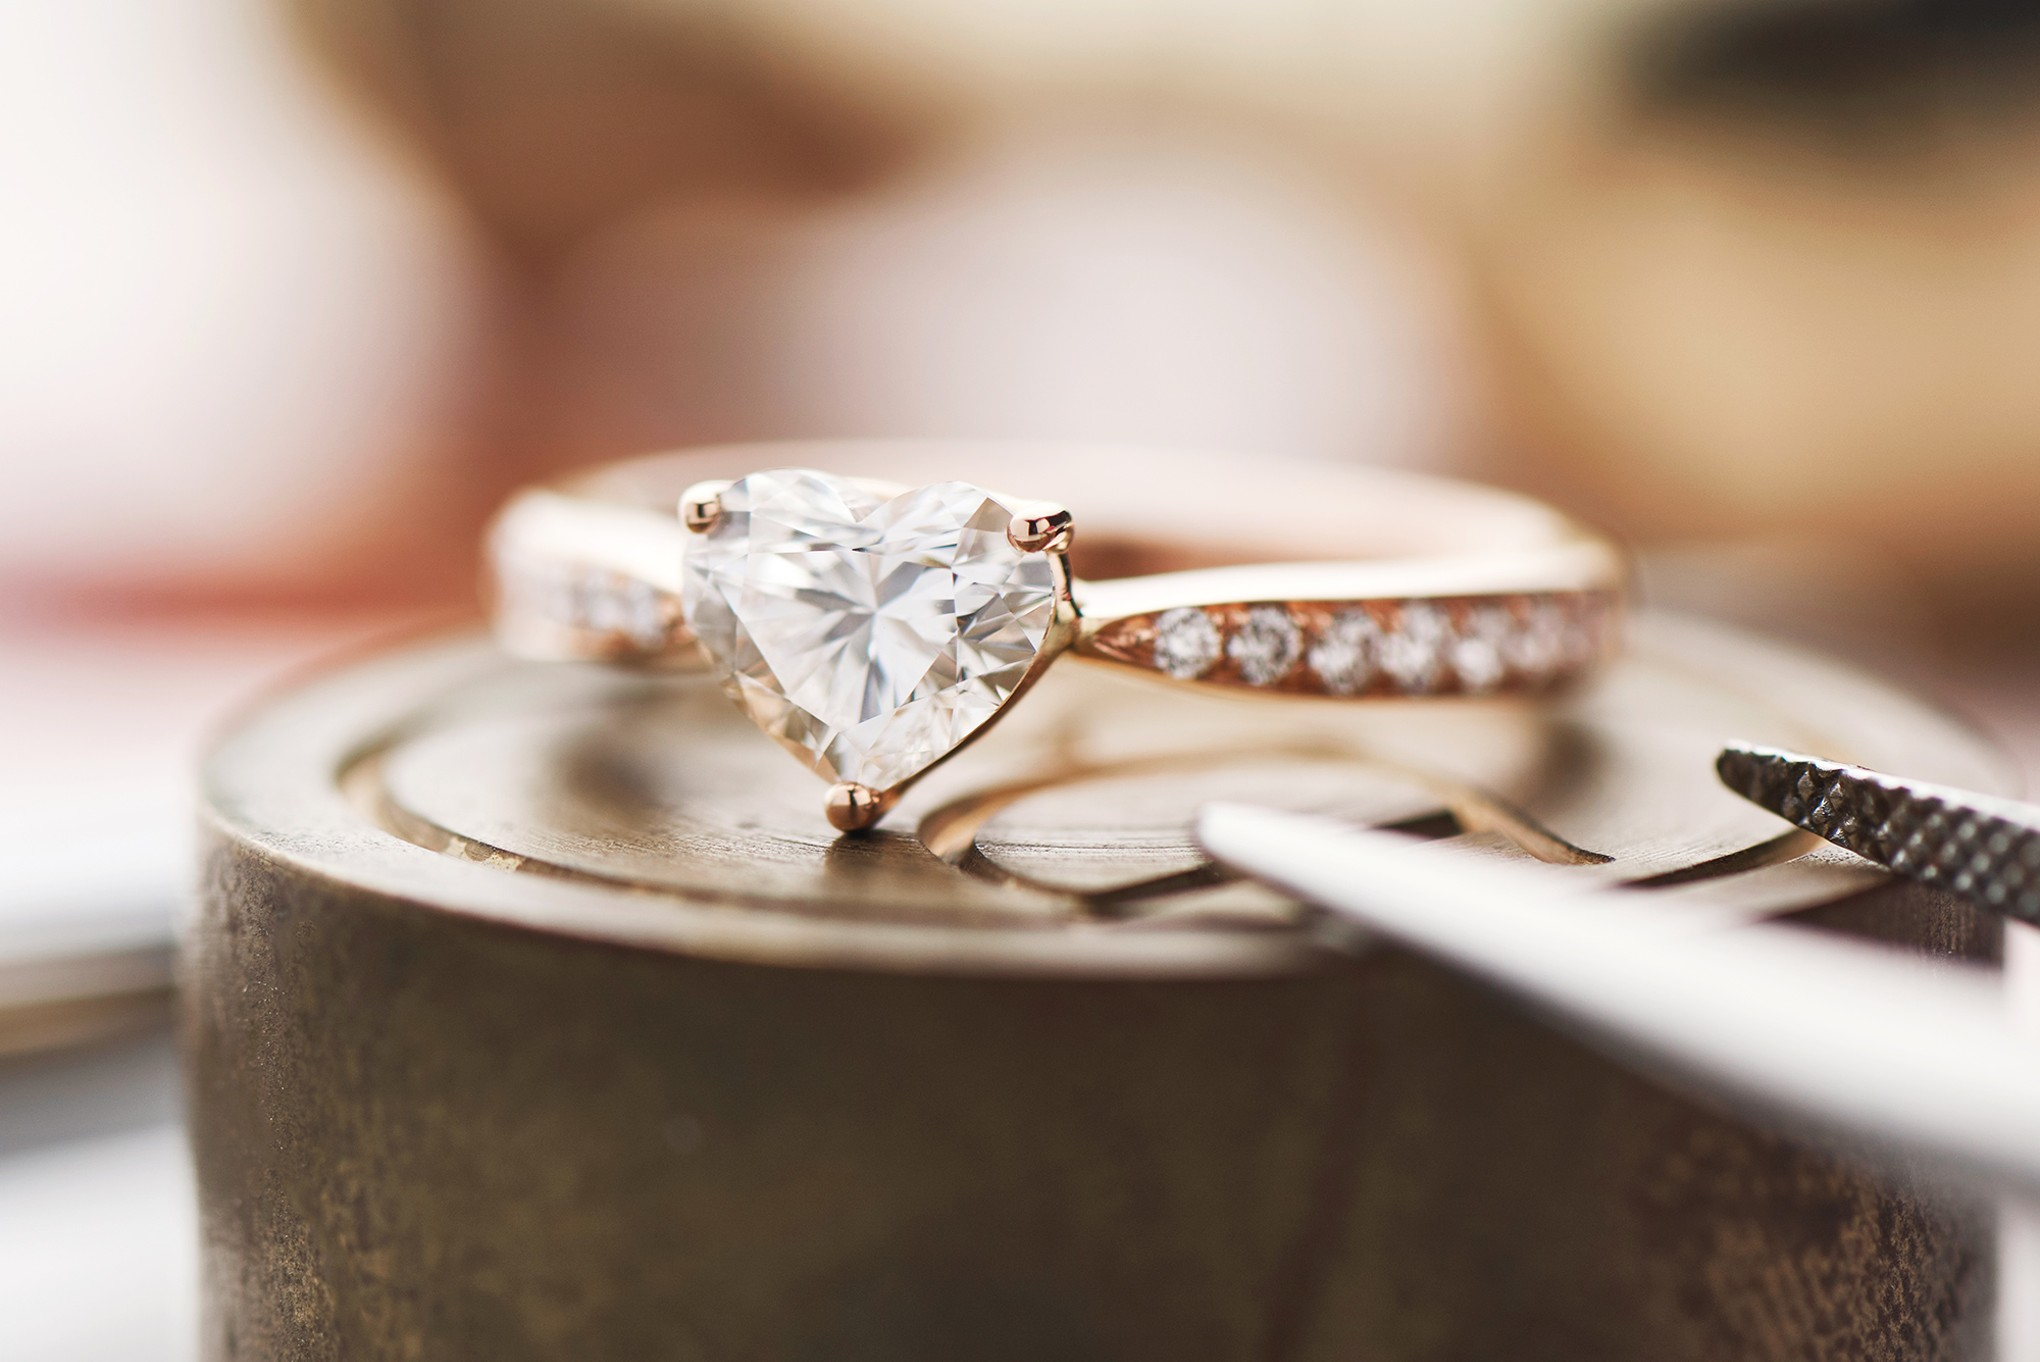 What The Aspects That Makes A Simple Ring To An Engagement Ring